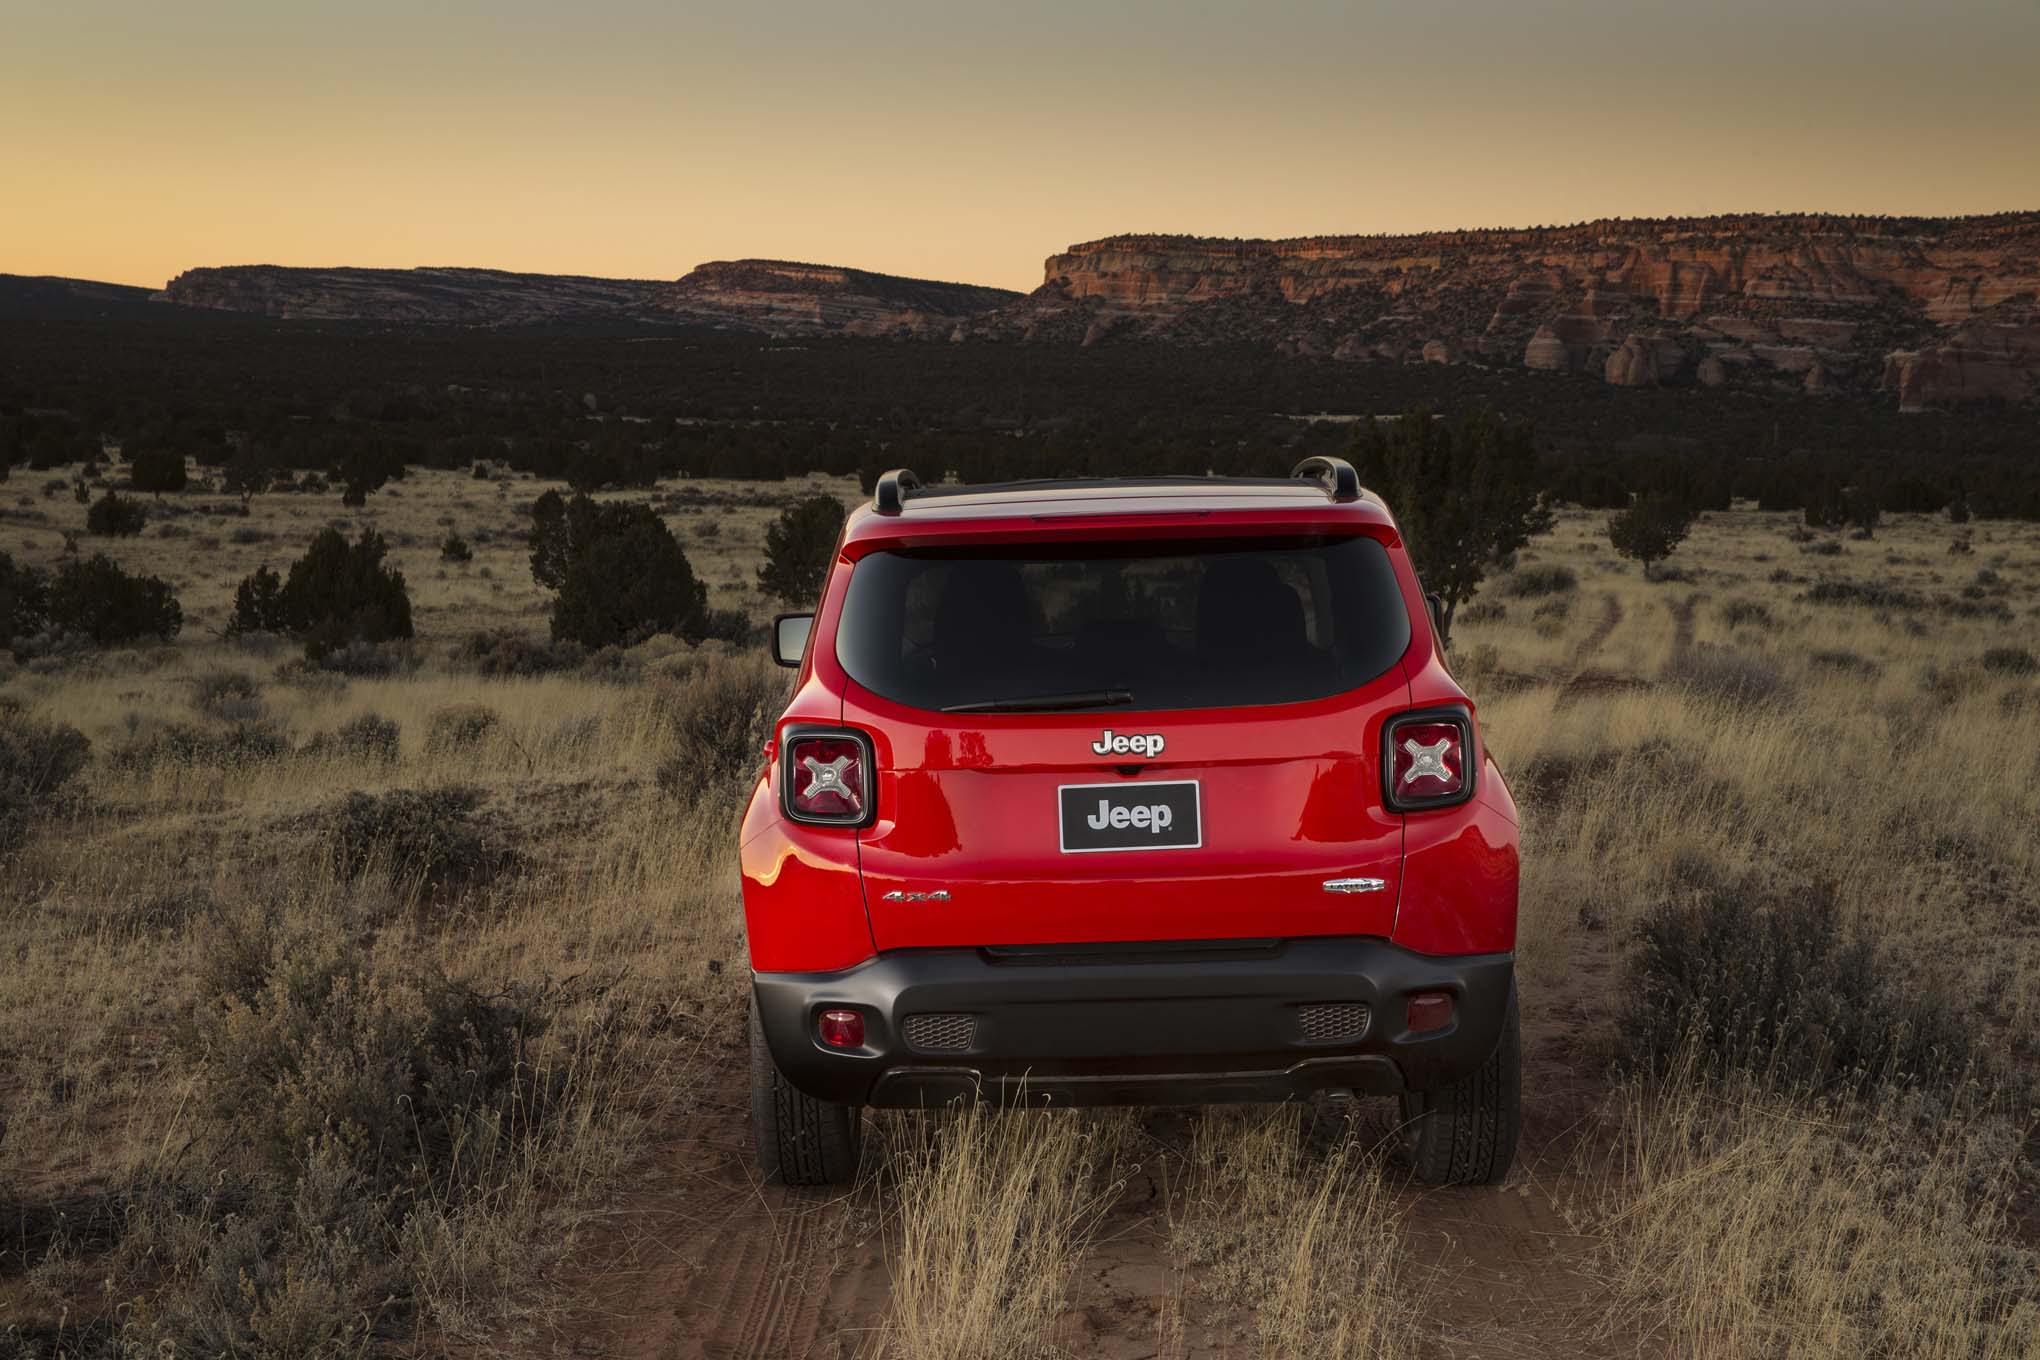 2015 Jeep Renegade Lattitude rear end 03